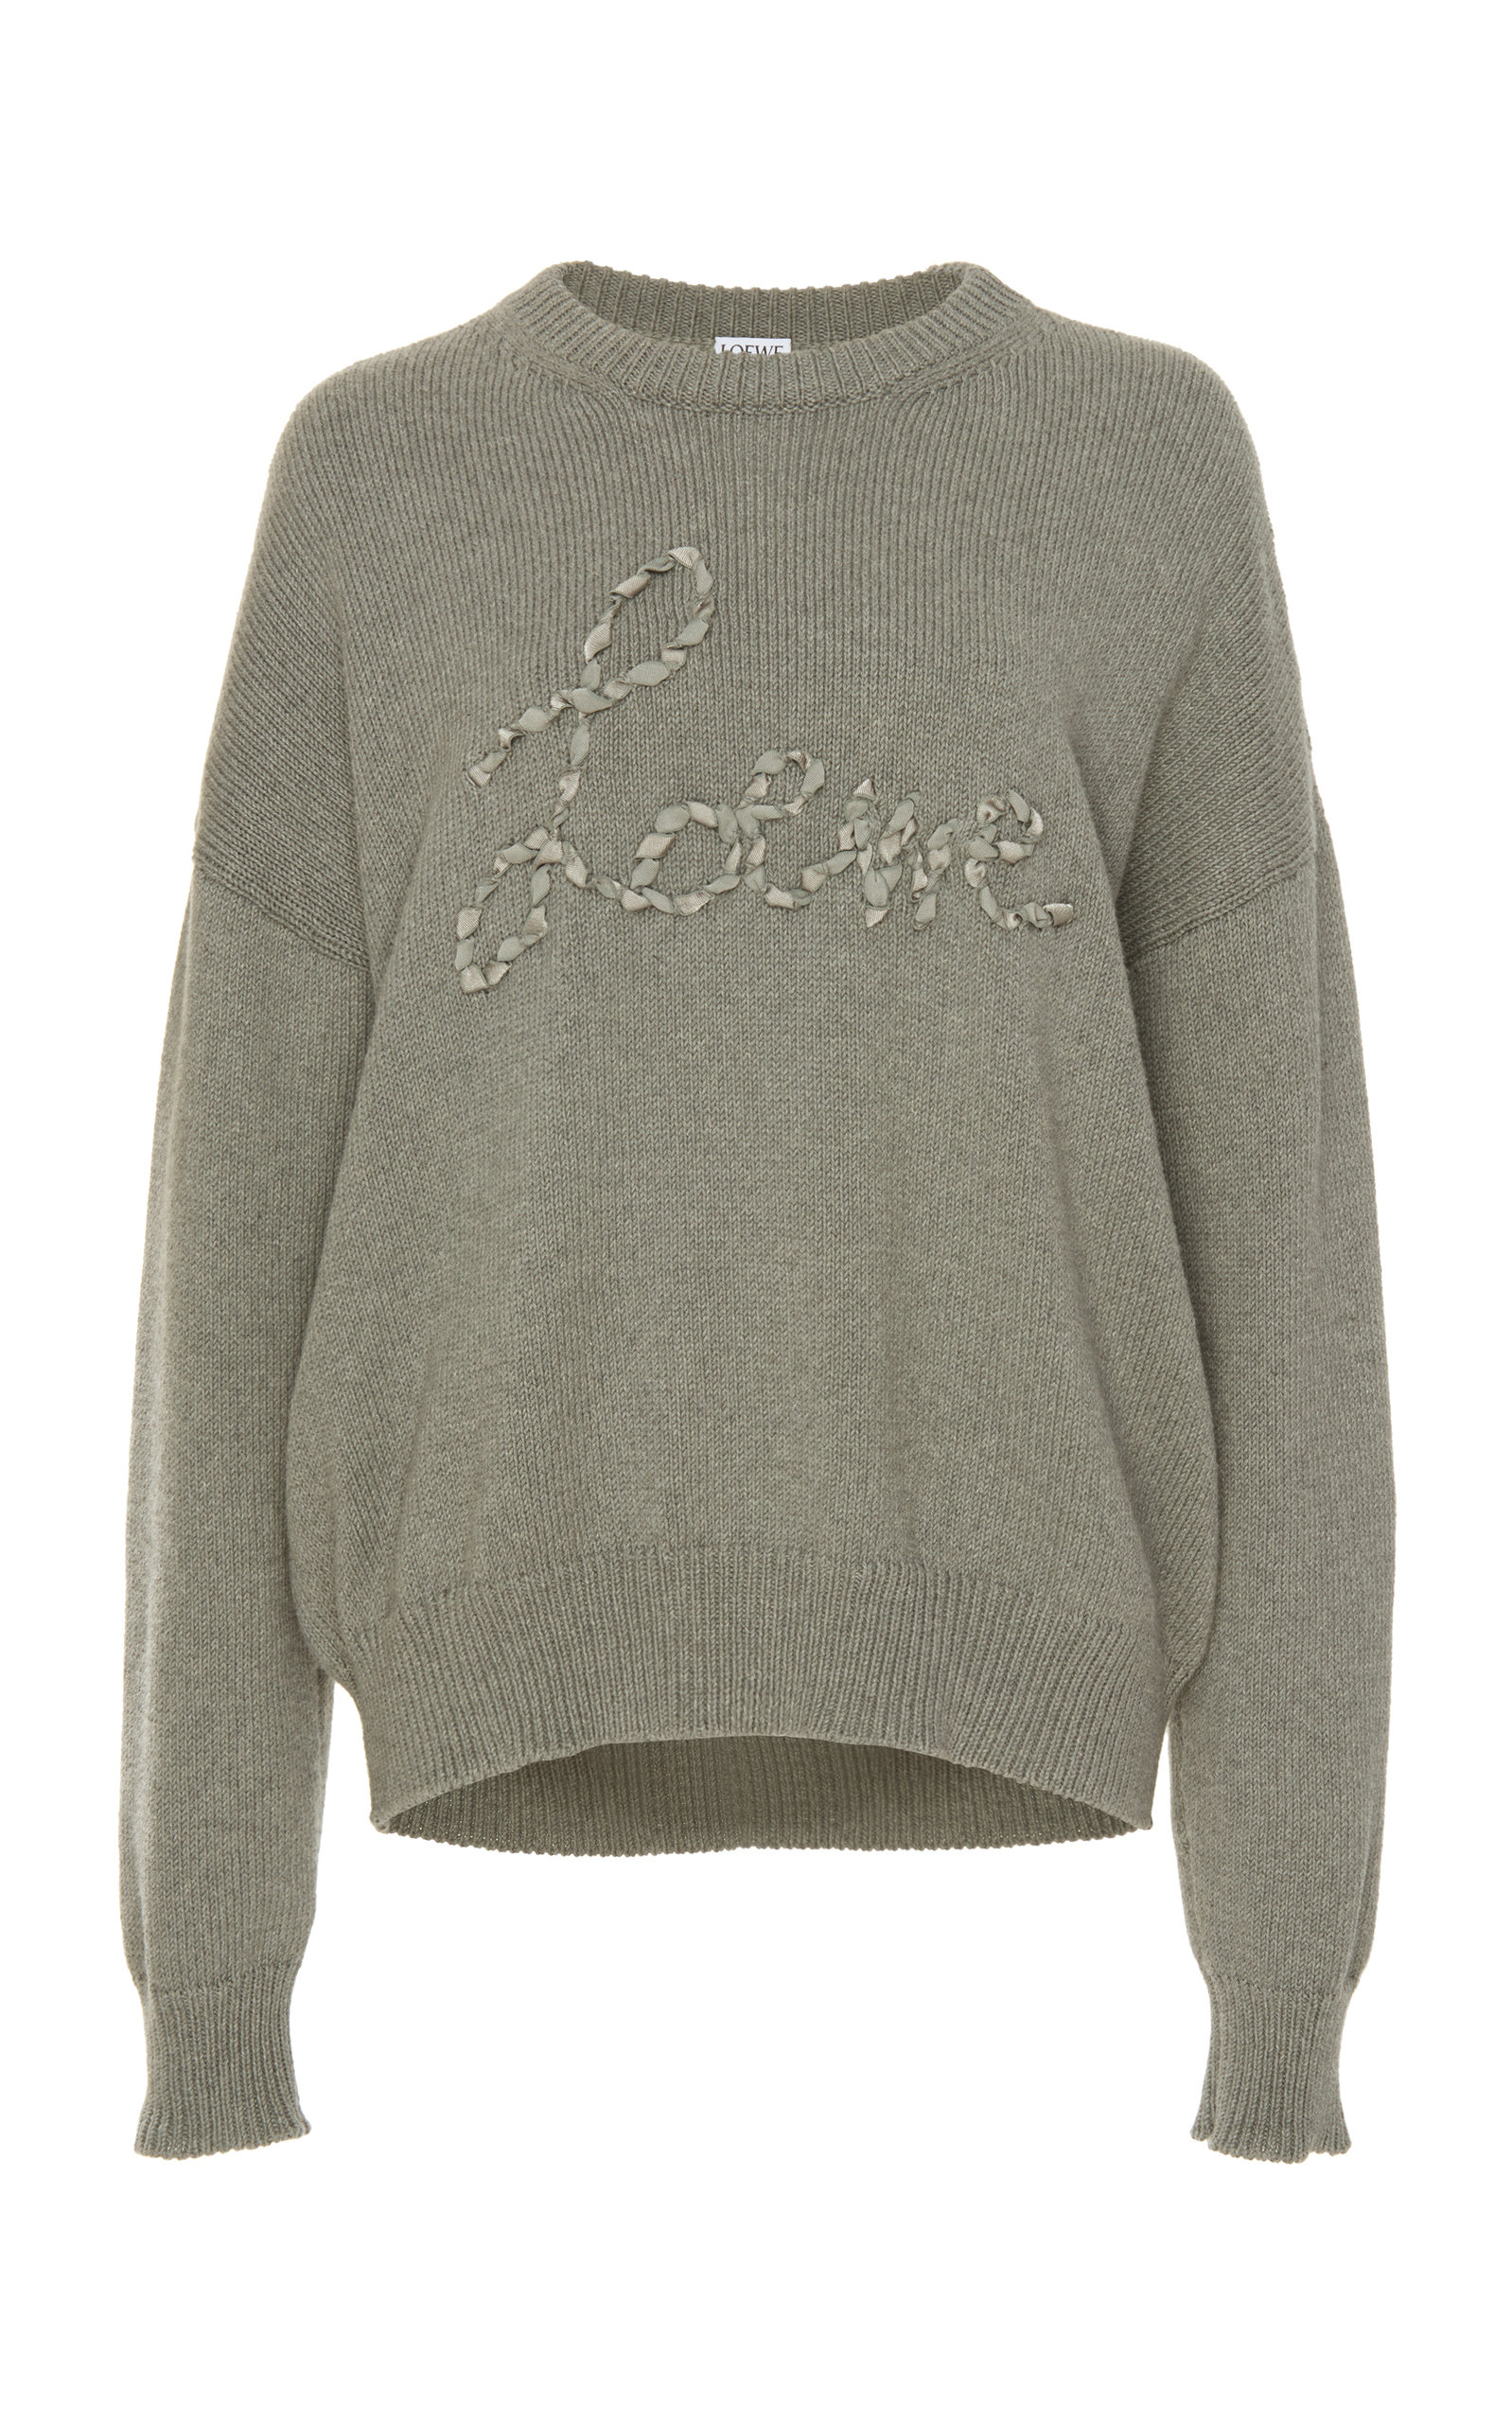 Loewe Shirts Embroidered Cotton Sweatshirt